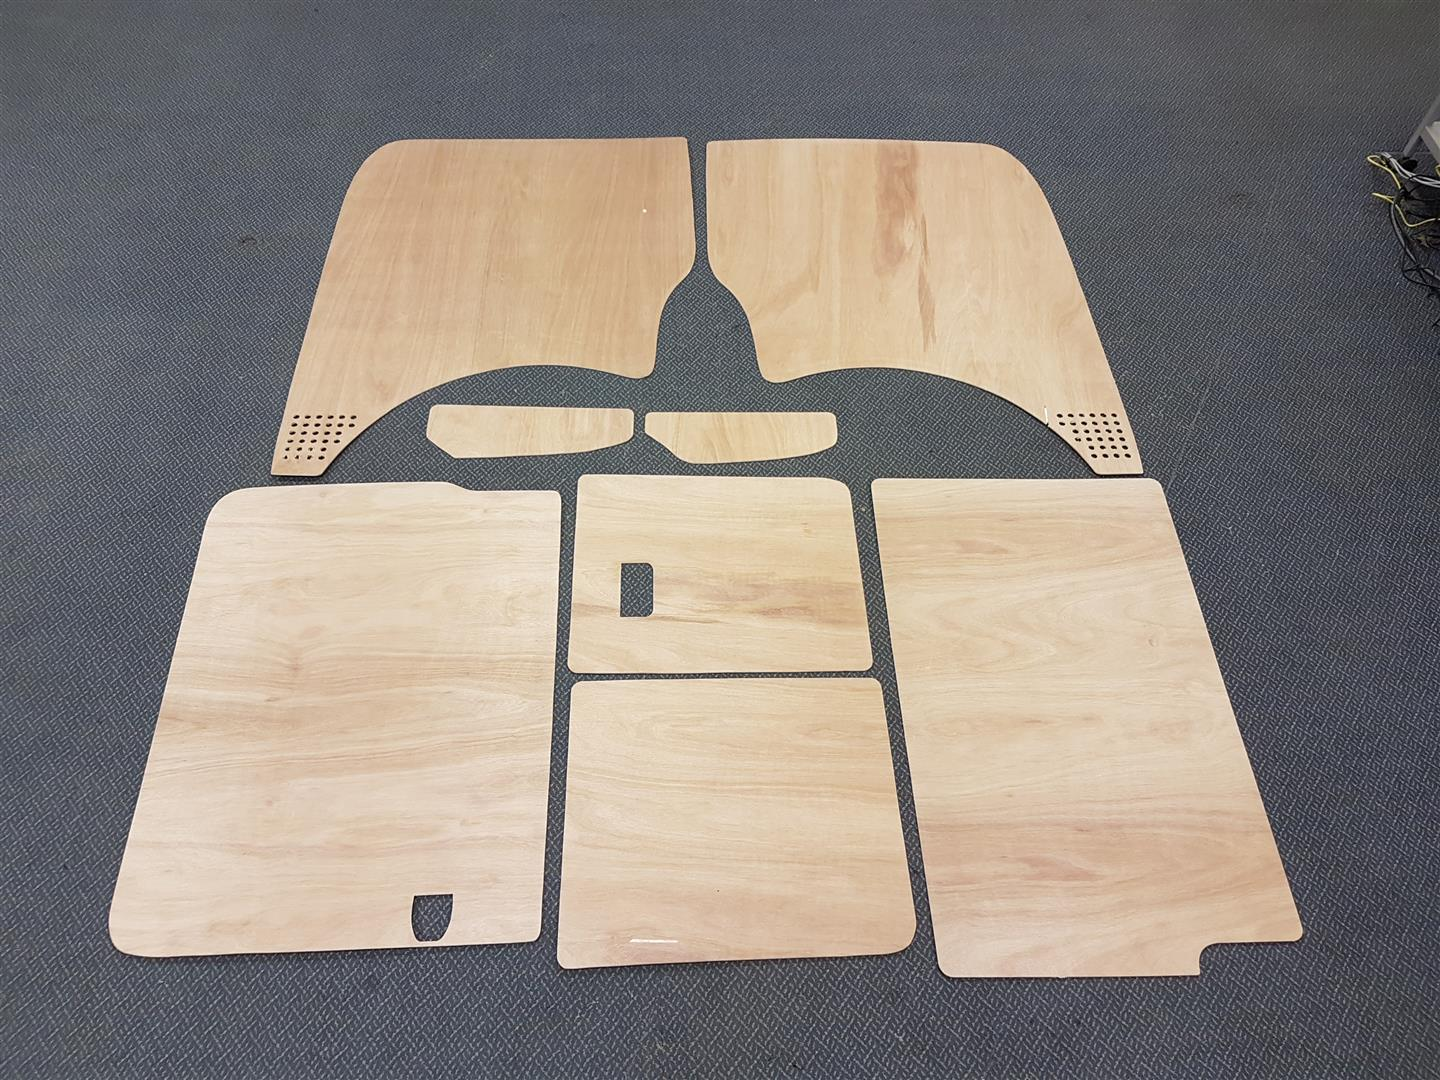 Plywood Kits